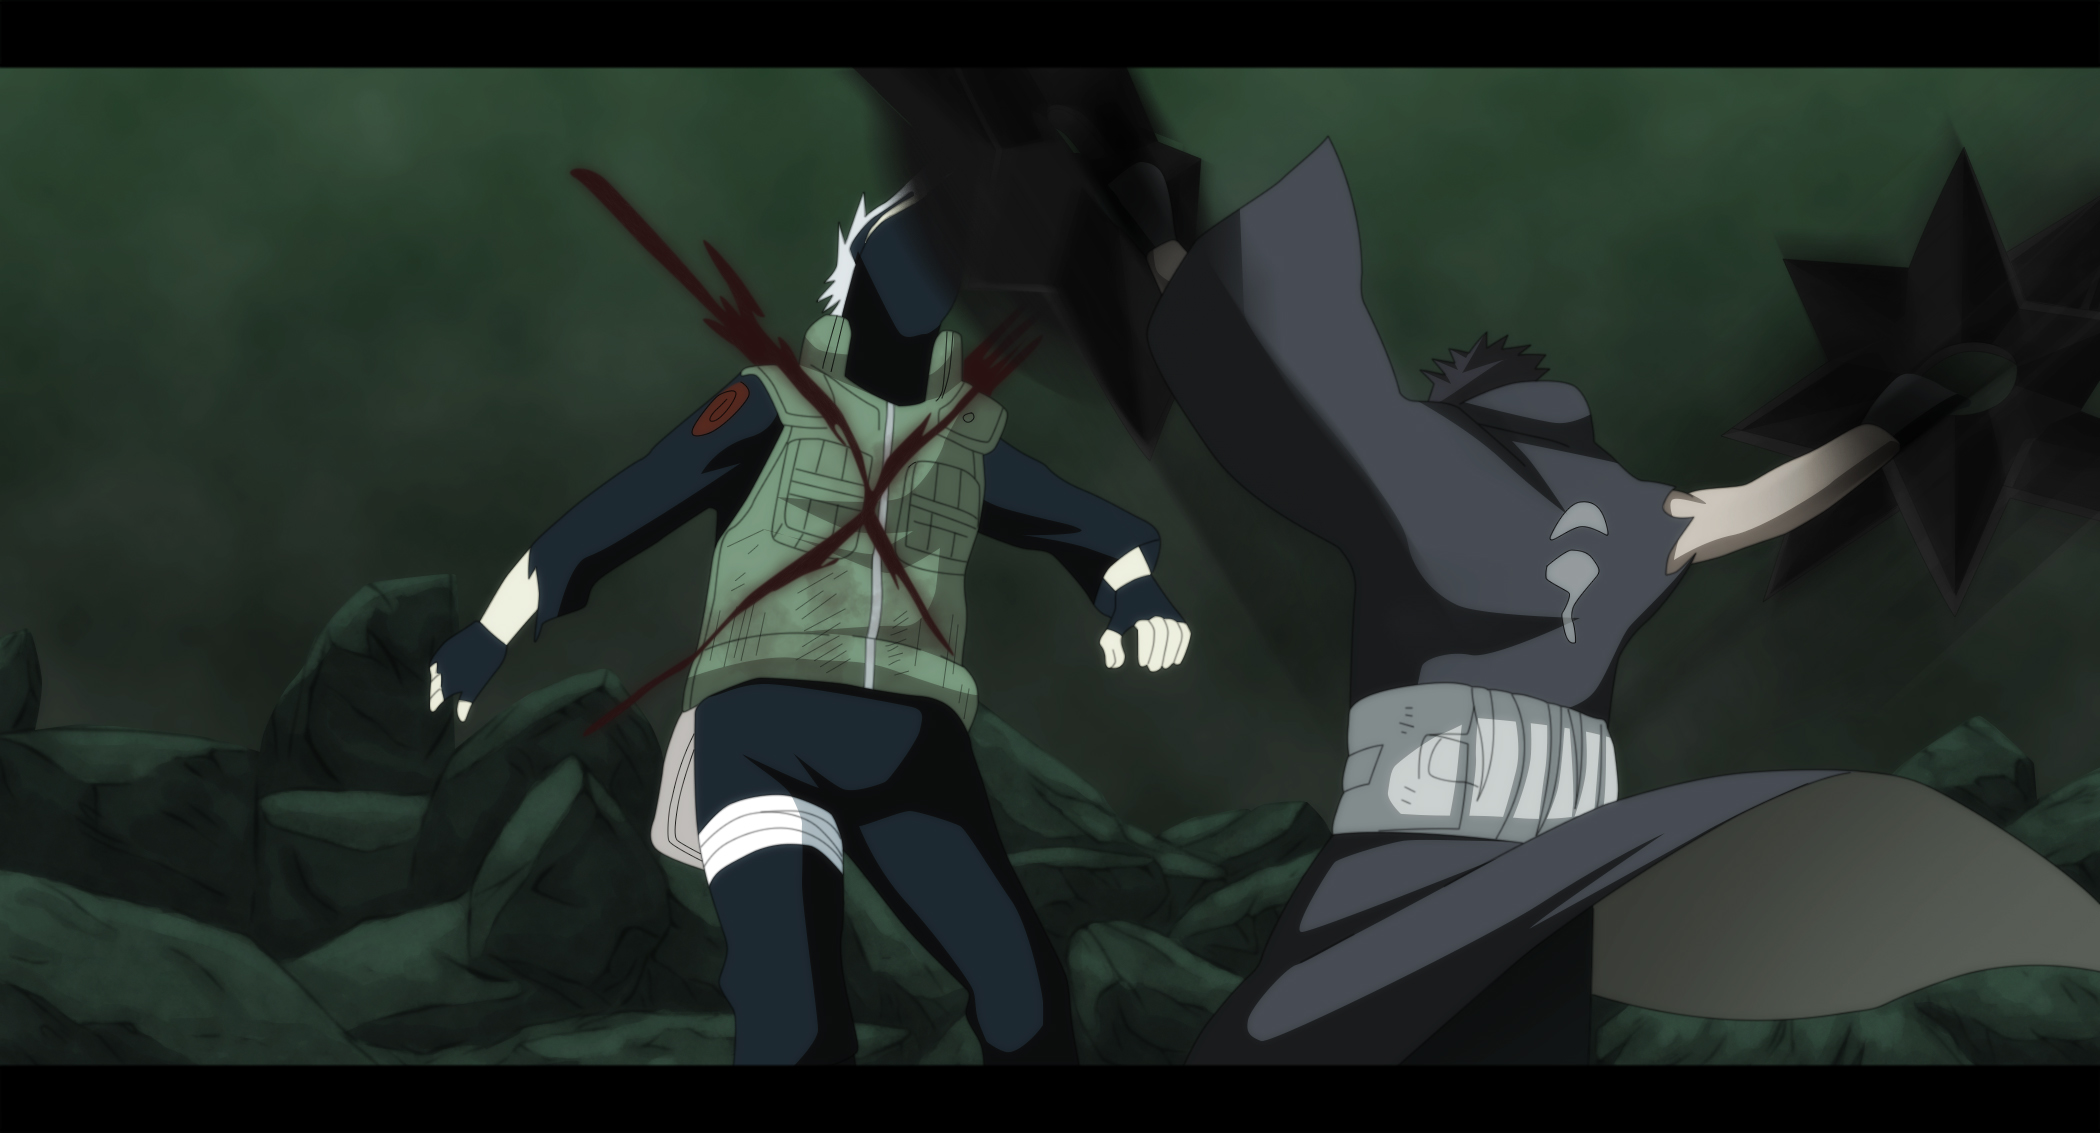 http://dailyanimeart.files.wordpress.com/2012/11/kakashi_vs_obito___naruto_608_by_rechever3-d5kfkvx.jpg